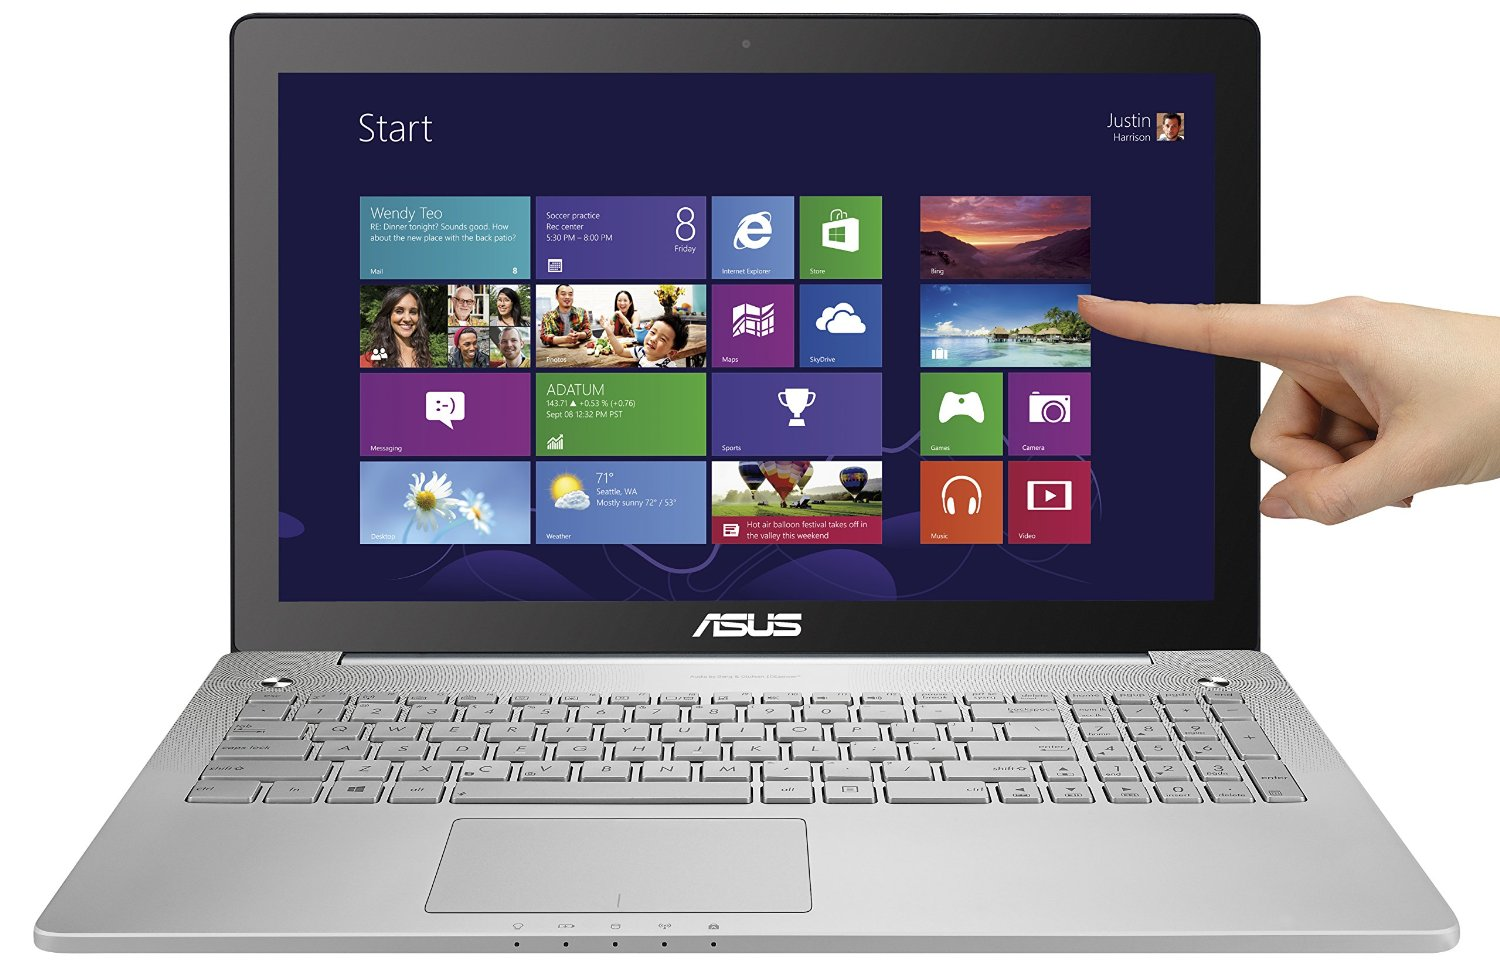 The Best Senior Laptops 2017 Compared Reviewed Assisted Living Today Add Ram To Your Laptop Easily Asus N550jk Ds71t 156 Full Hd Touchscreen Quad Core I7 W Aluminum Body 8gb 1tb